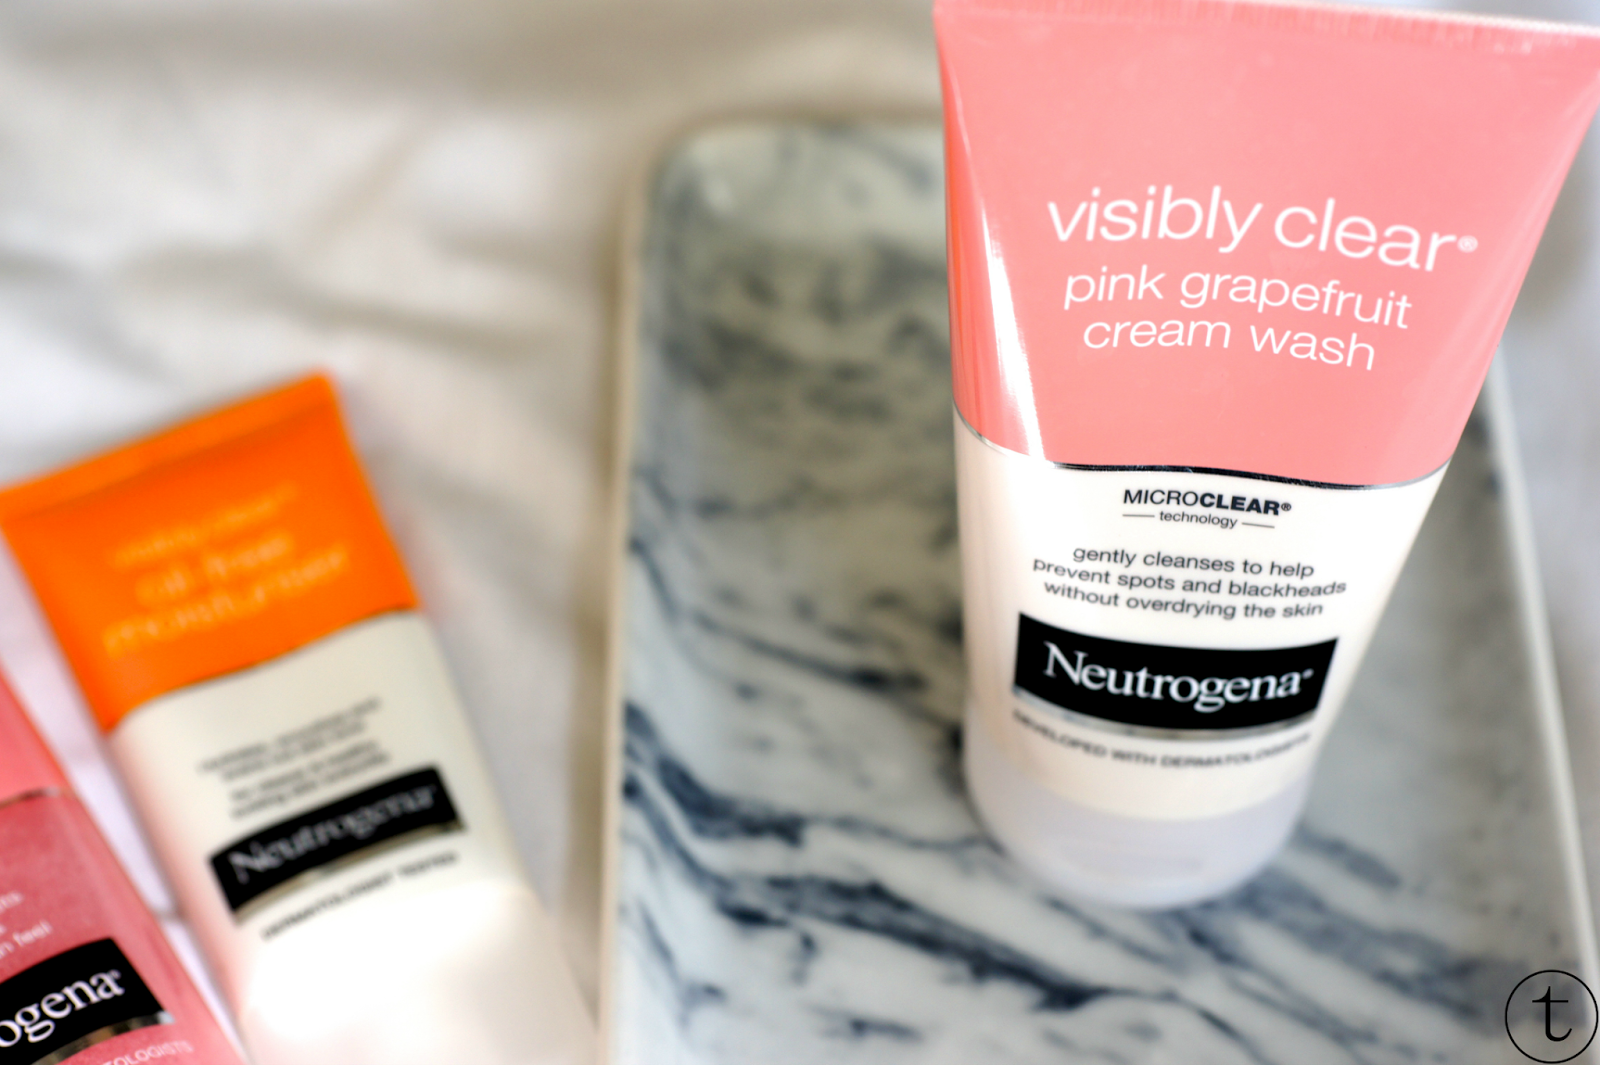 neutrogena visibly clear cream wash skin care products